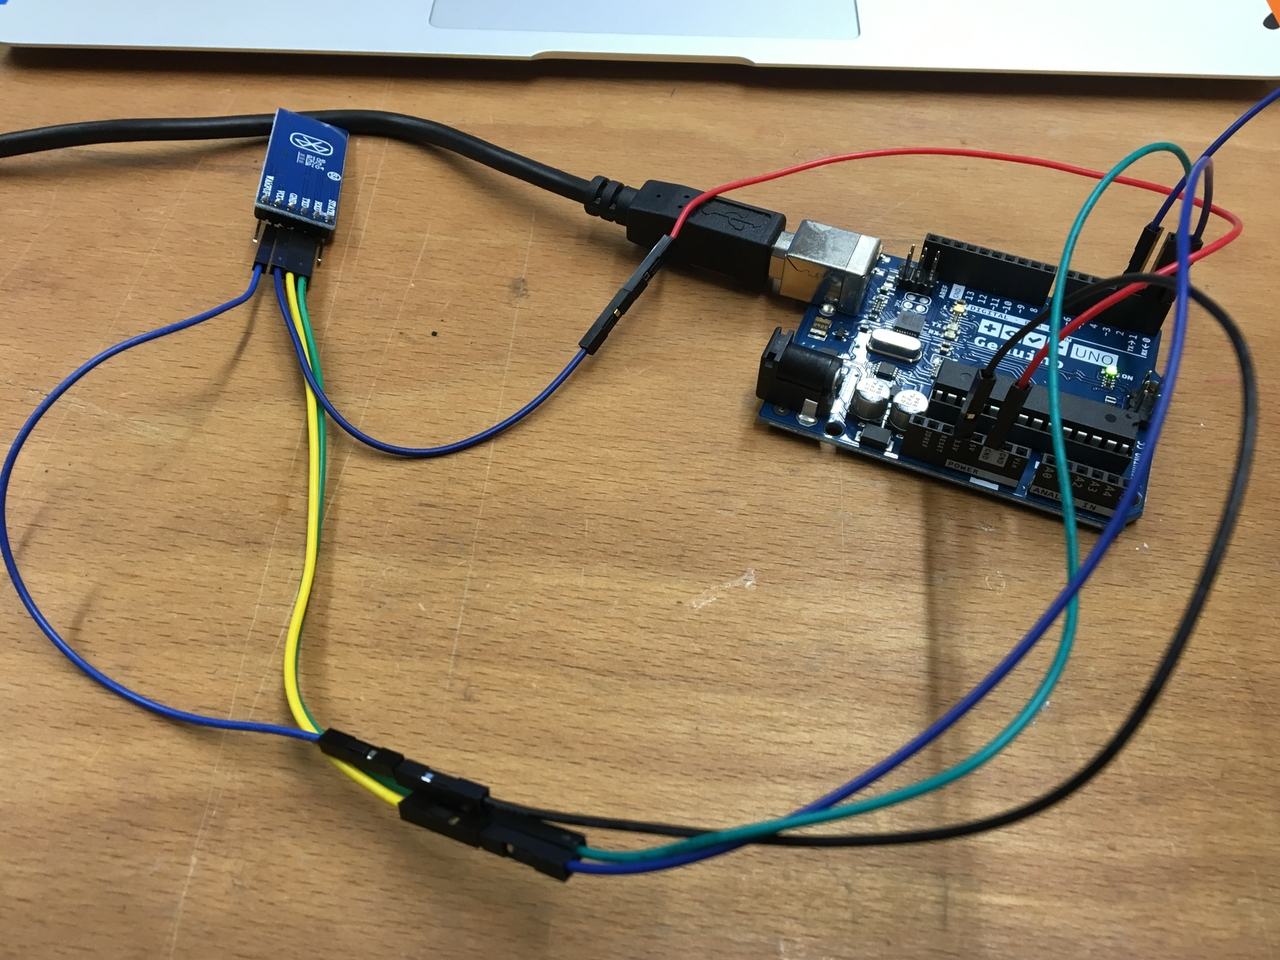 Fabacademy 2016 Project Page Wiring Arduino Processing The Itself Was Pretty Easy You Just Need To Provide Gnd And 33v Hc05 Bluetooth Module Connect Rx Tx According Port